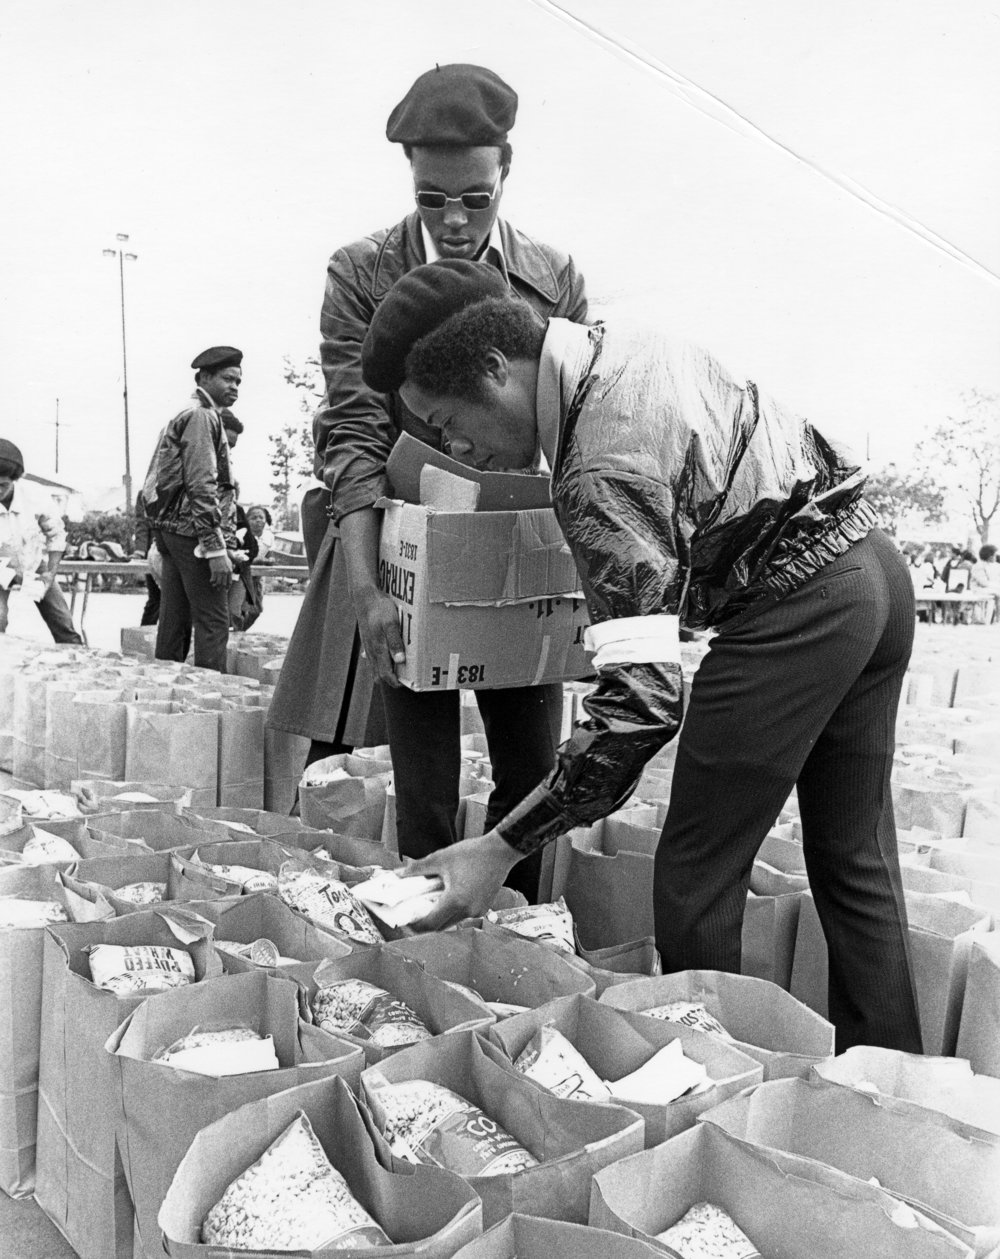 Members of the Black Panther Party for Self Defense stocking grocery bags for the party's food distribution program. Courtesy of Standford University Special Collection